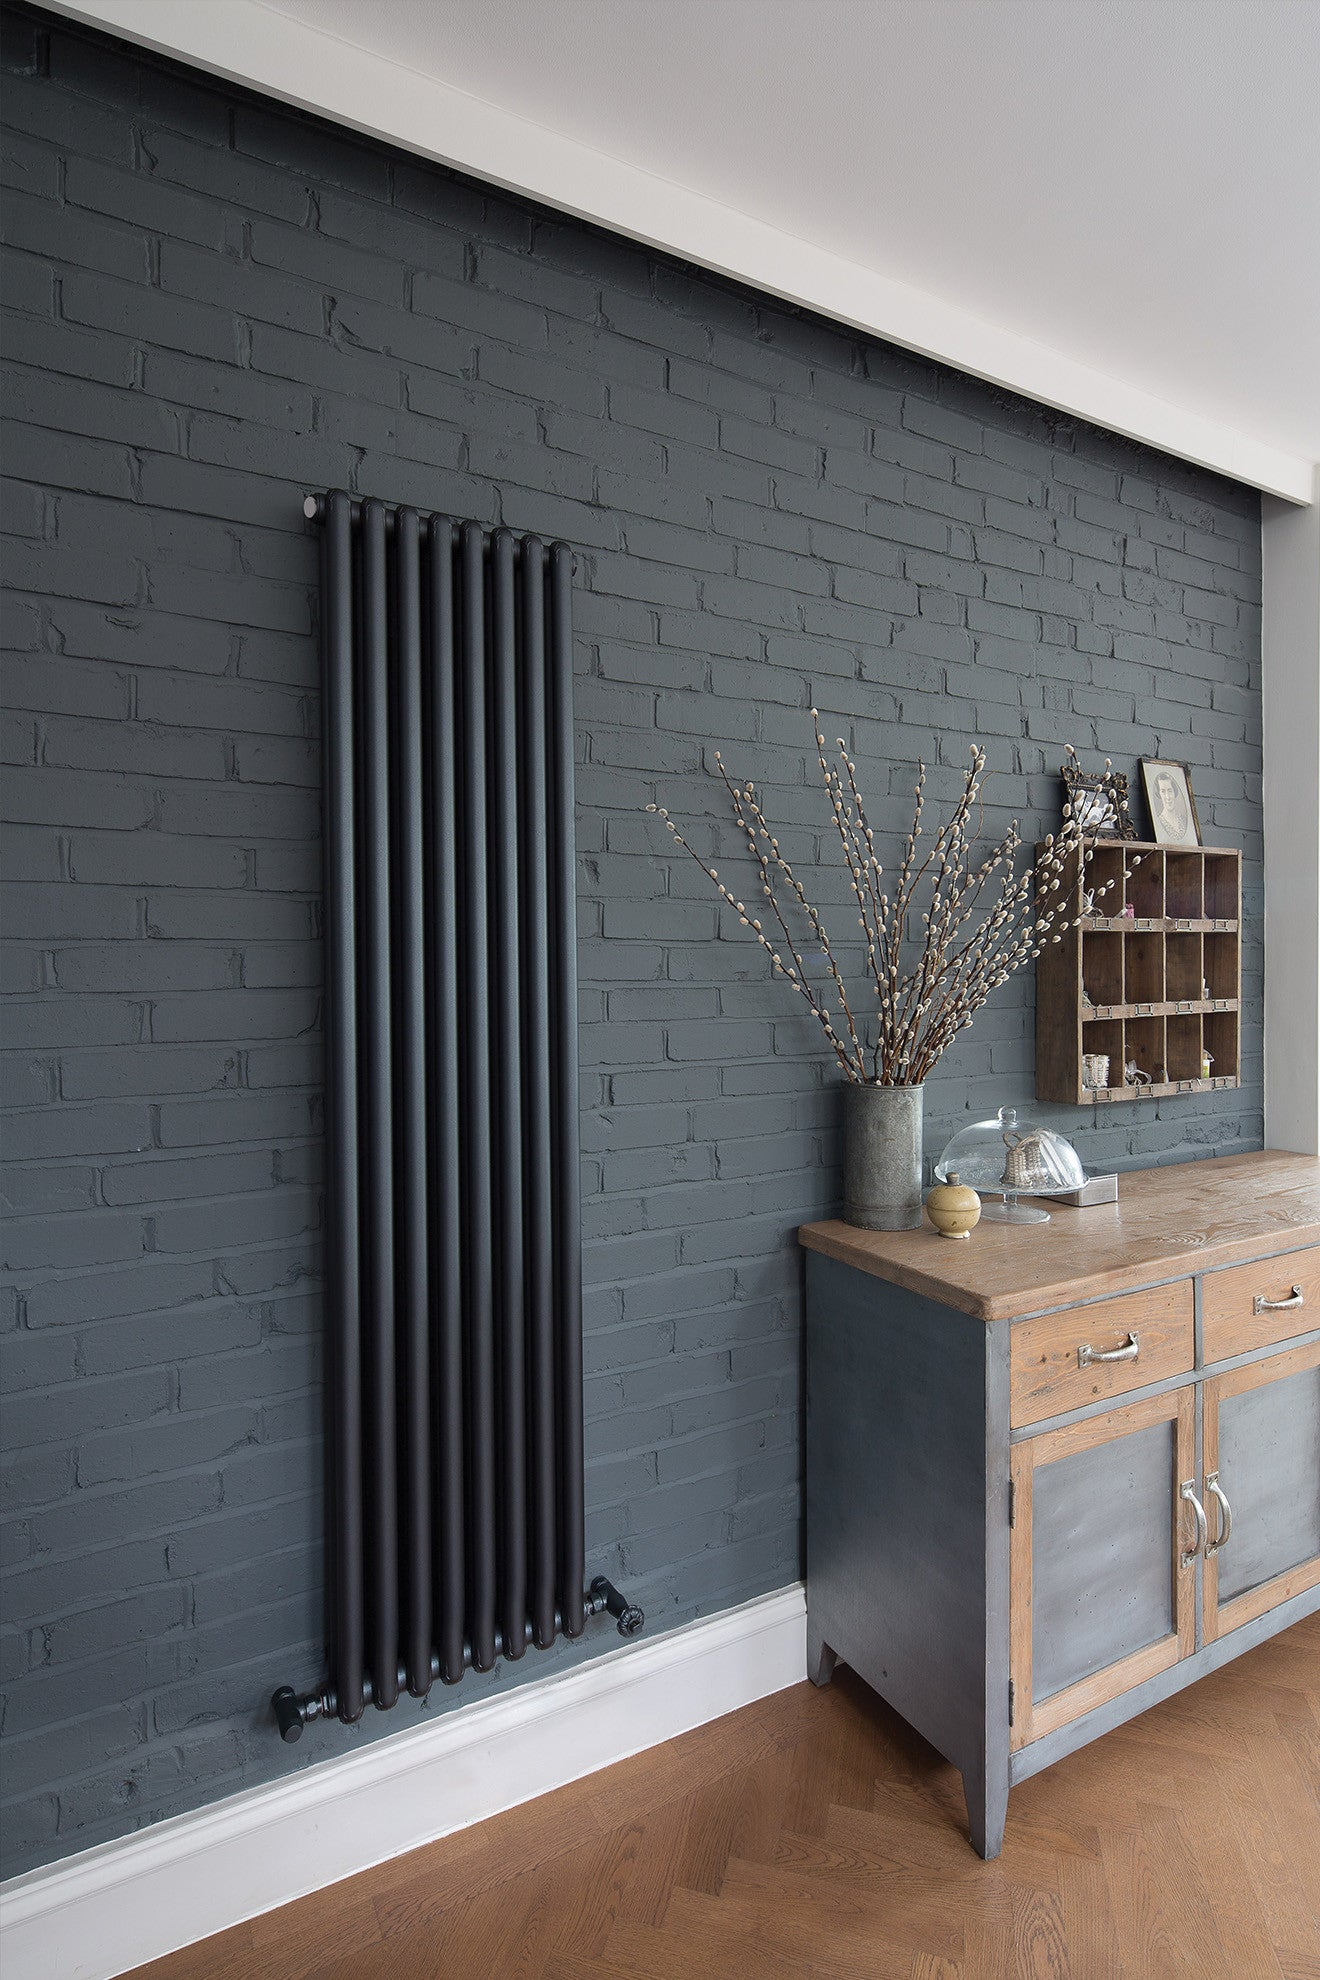 Black industrial tall radiator by Bisque radiators